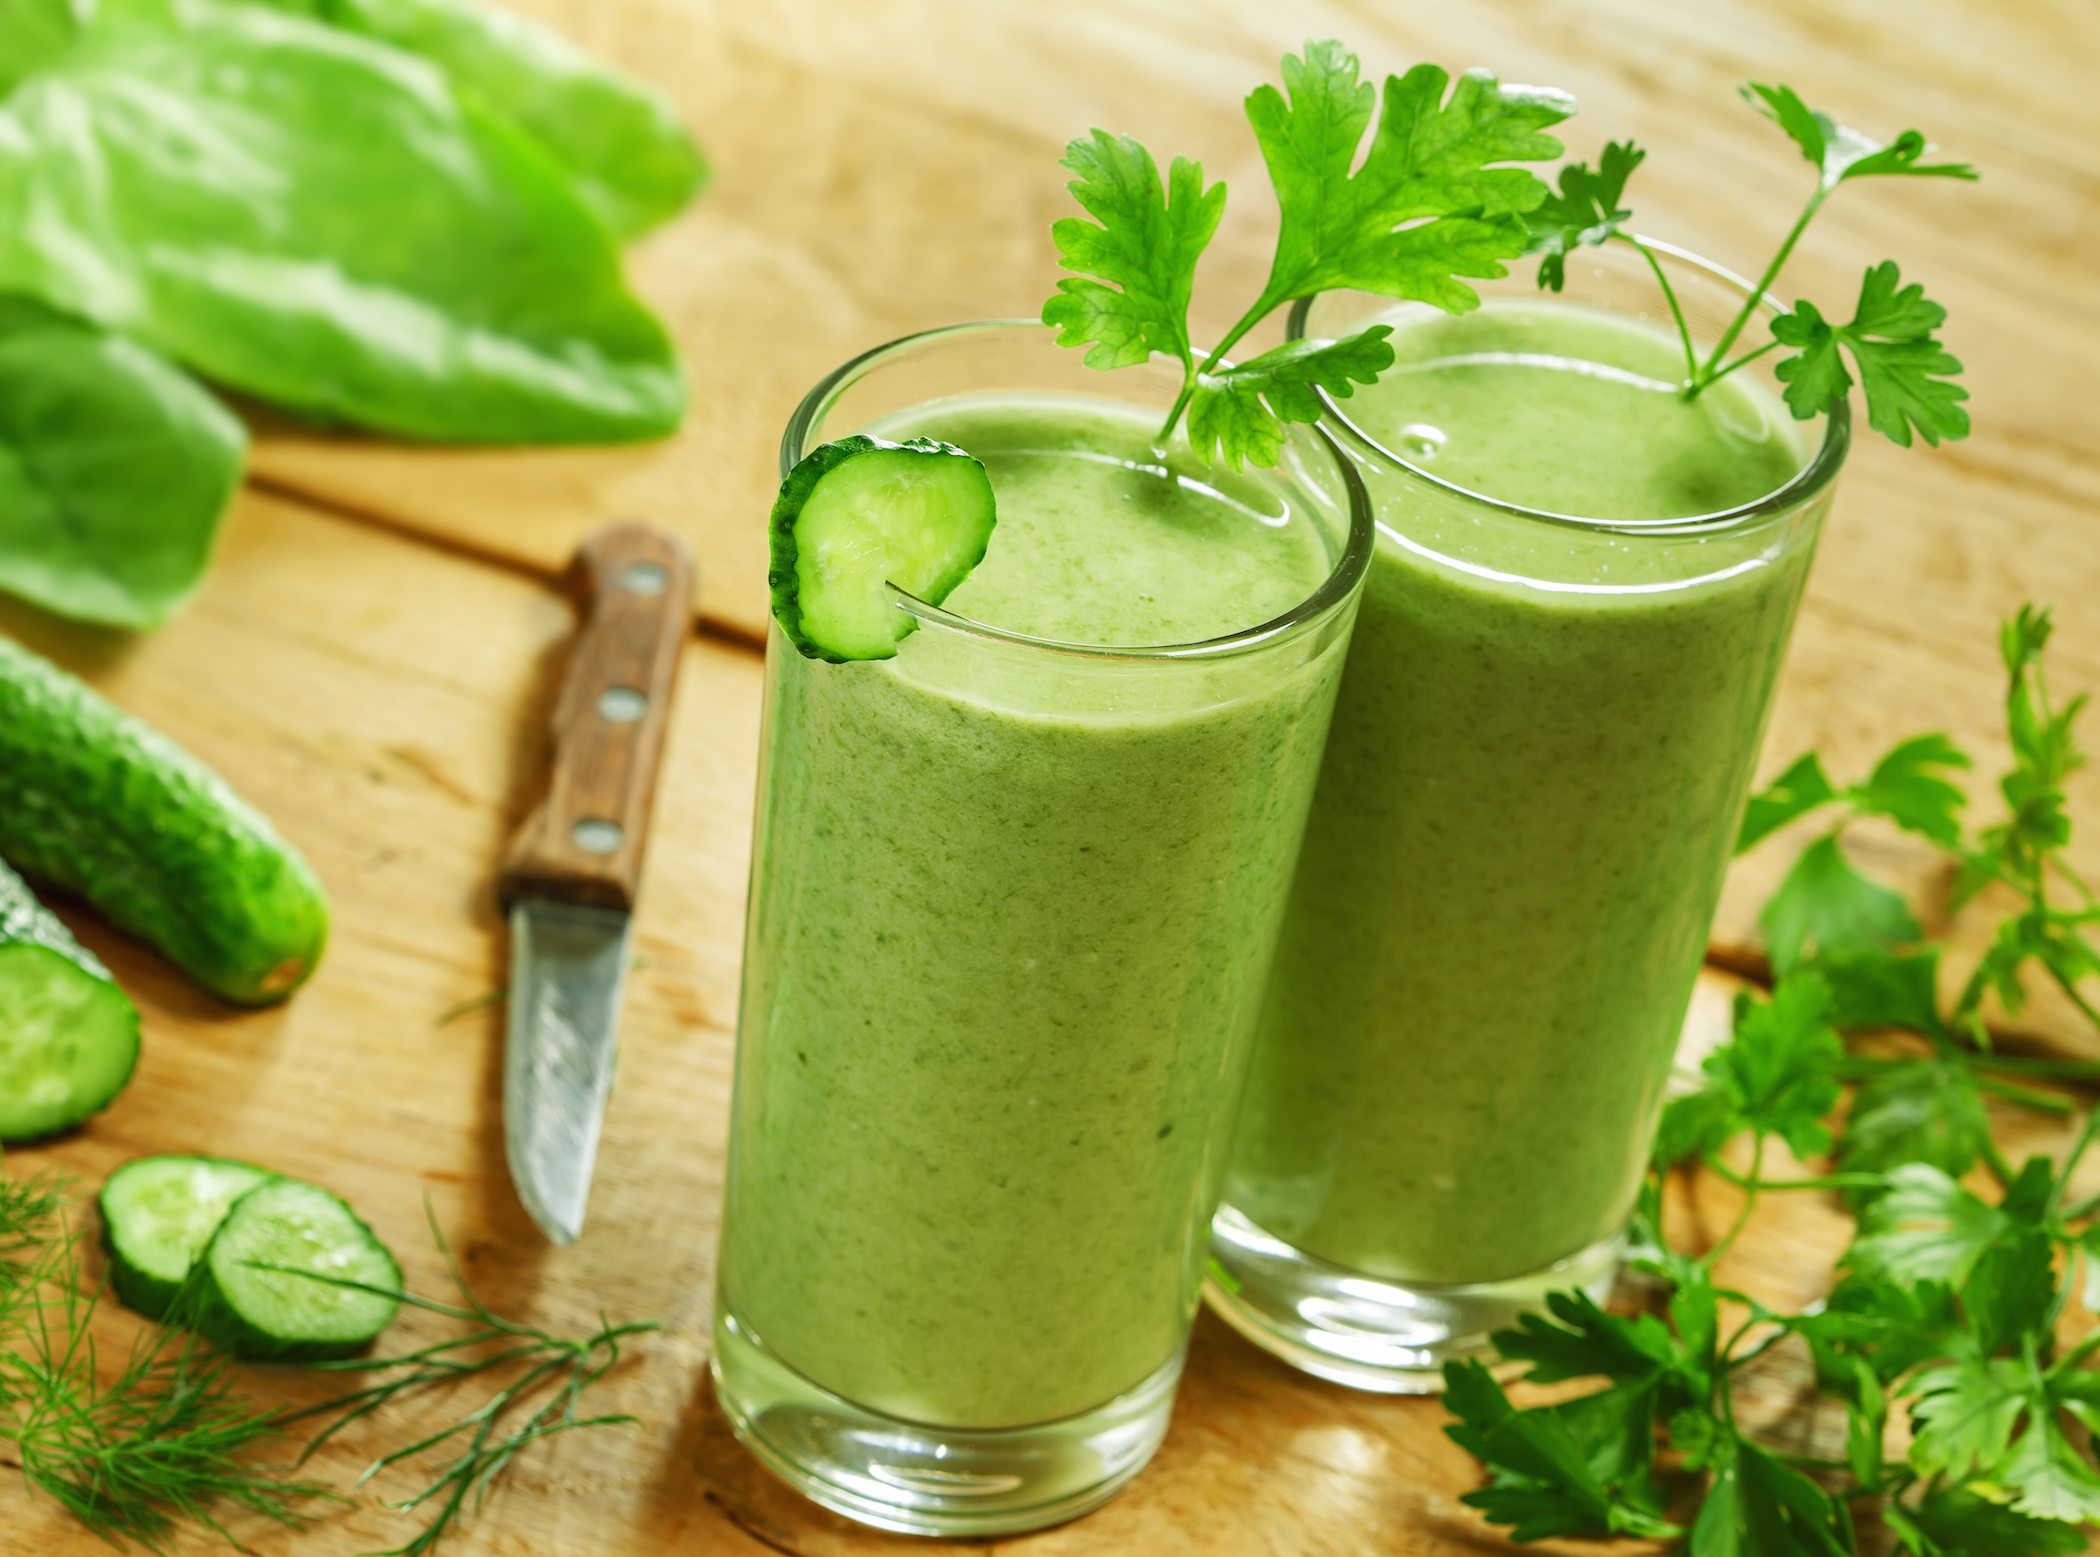 Basic Green Machine Juice